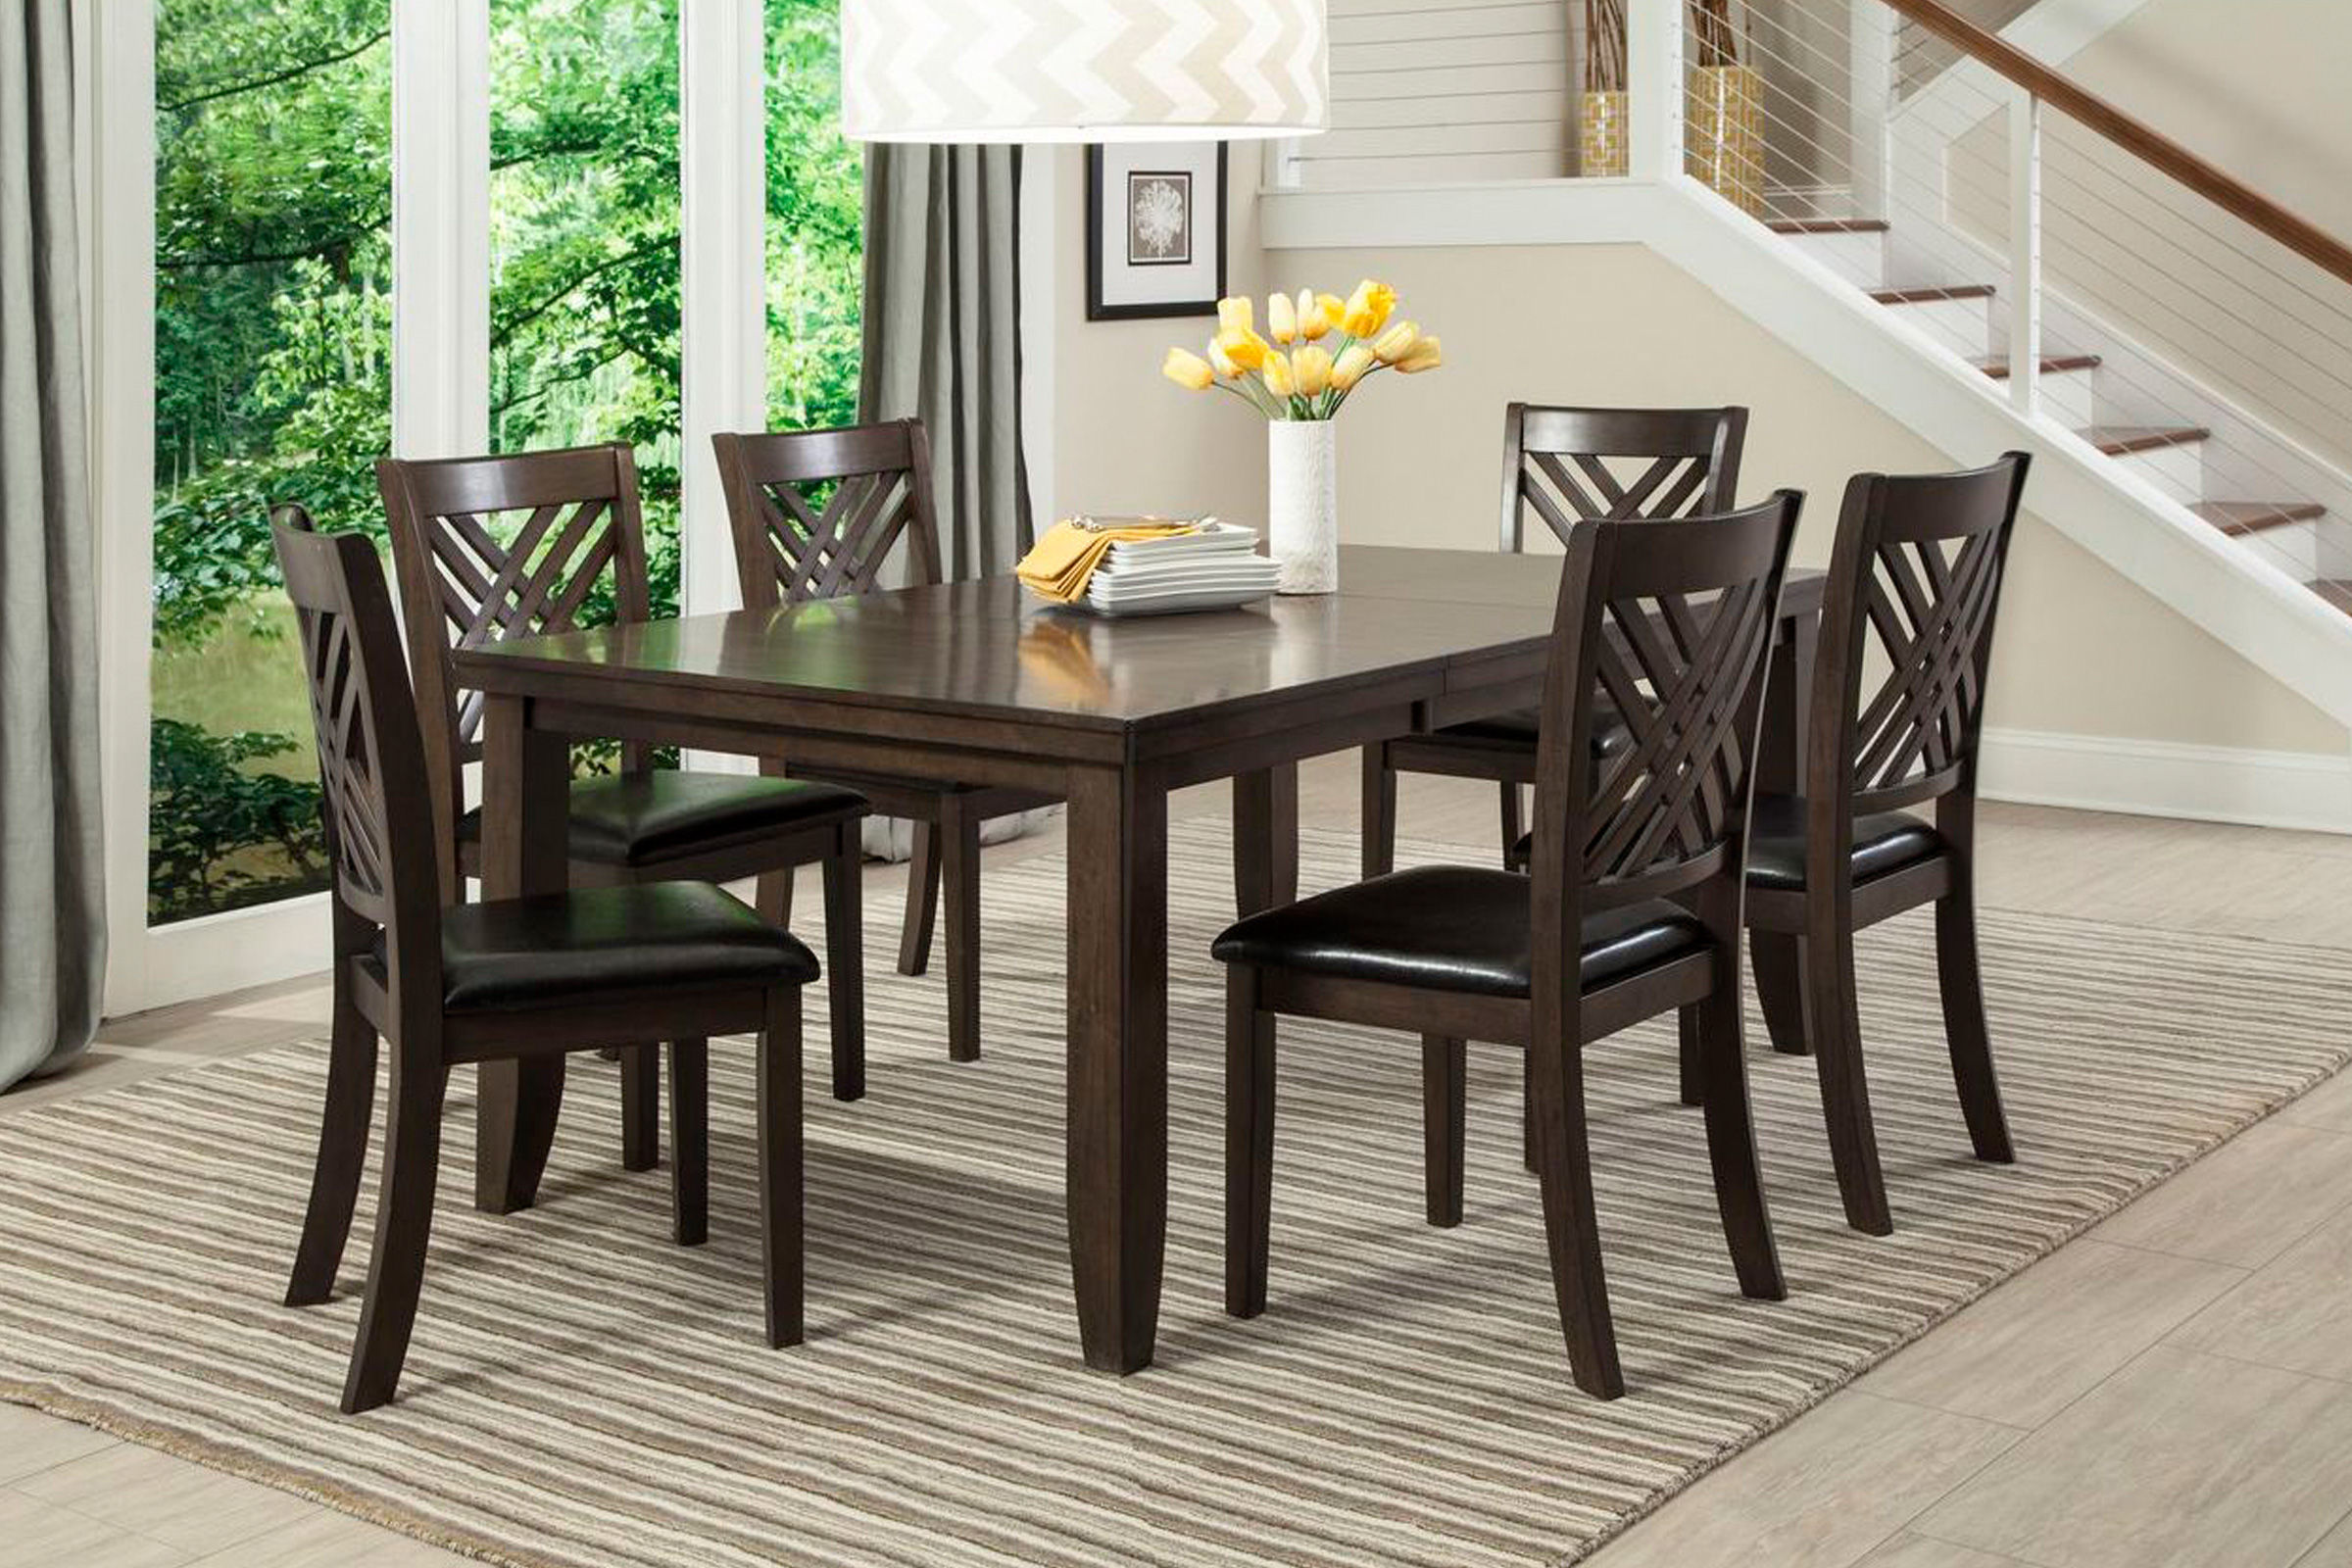 Lebaron Packages from  465 97. Shop Dining Room Furniture at Gardner White